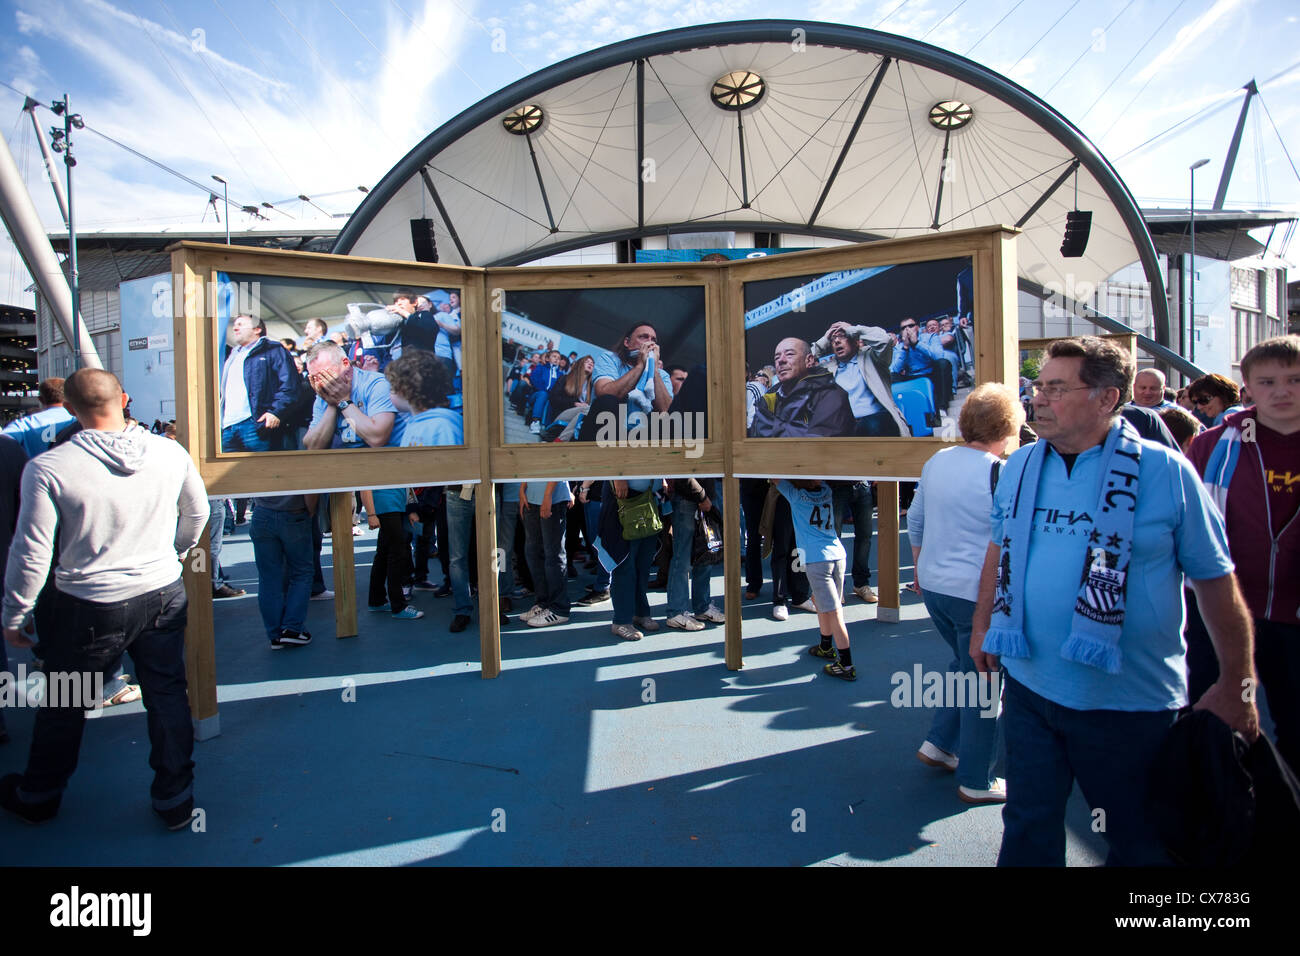 Fans inside the Etihad Campus, home of Manchester City Football Club, Manchester, England, United Kingdom - Stock Image